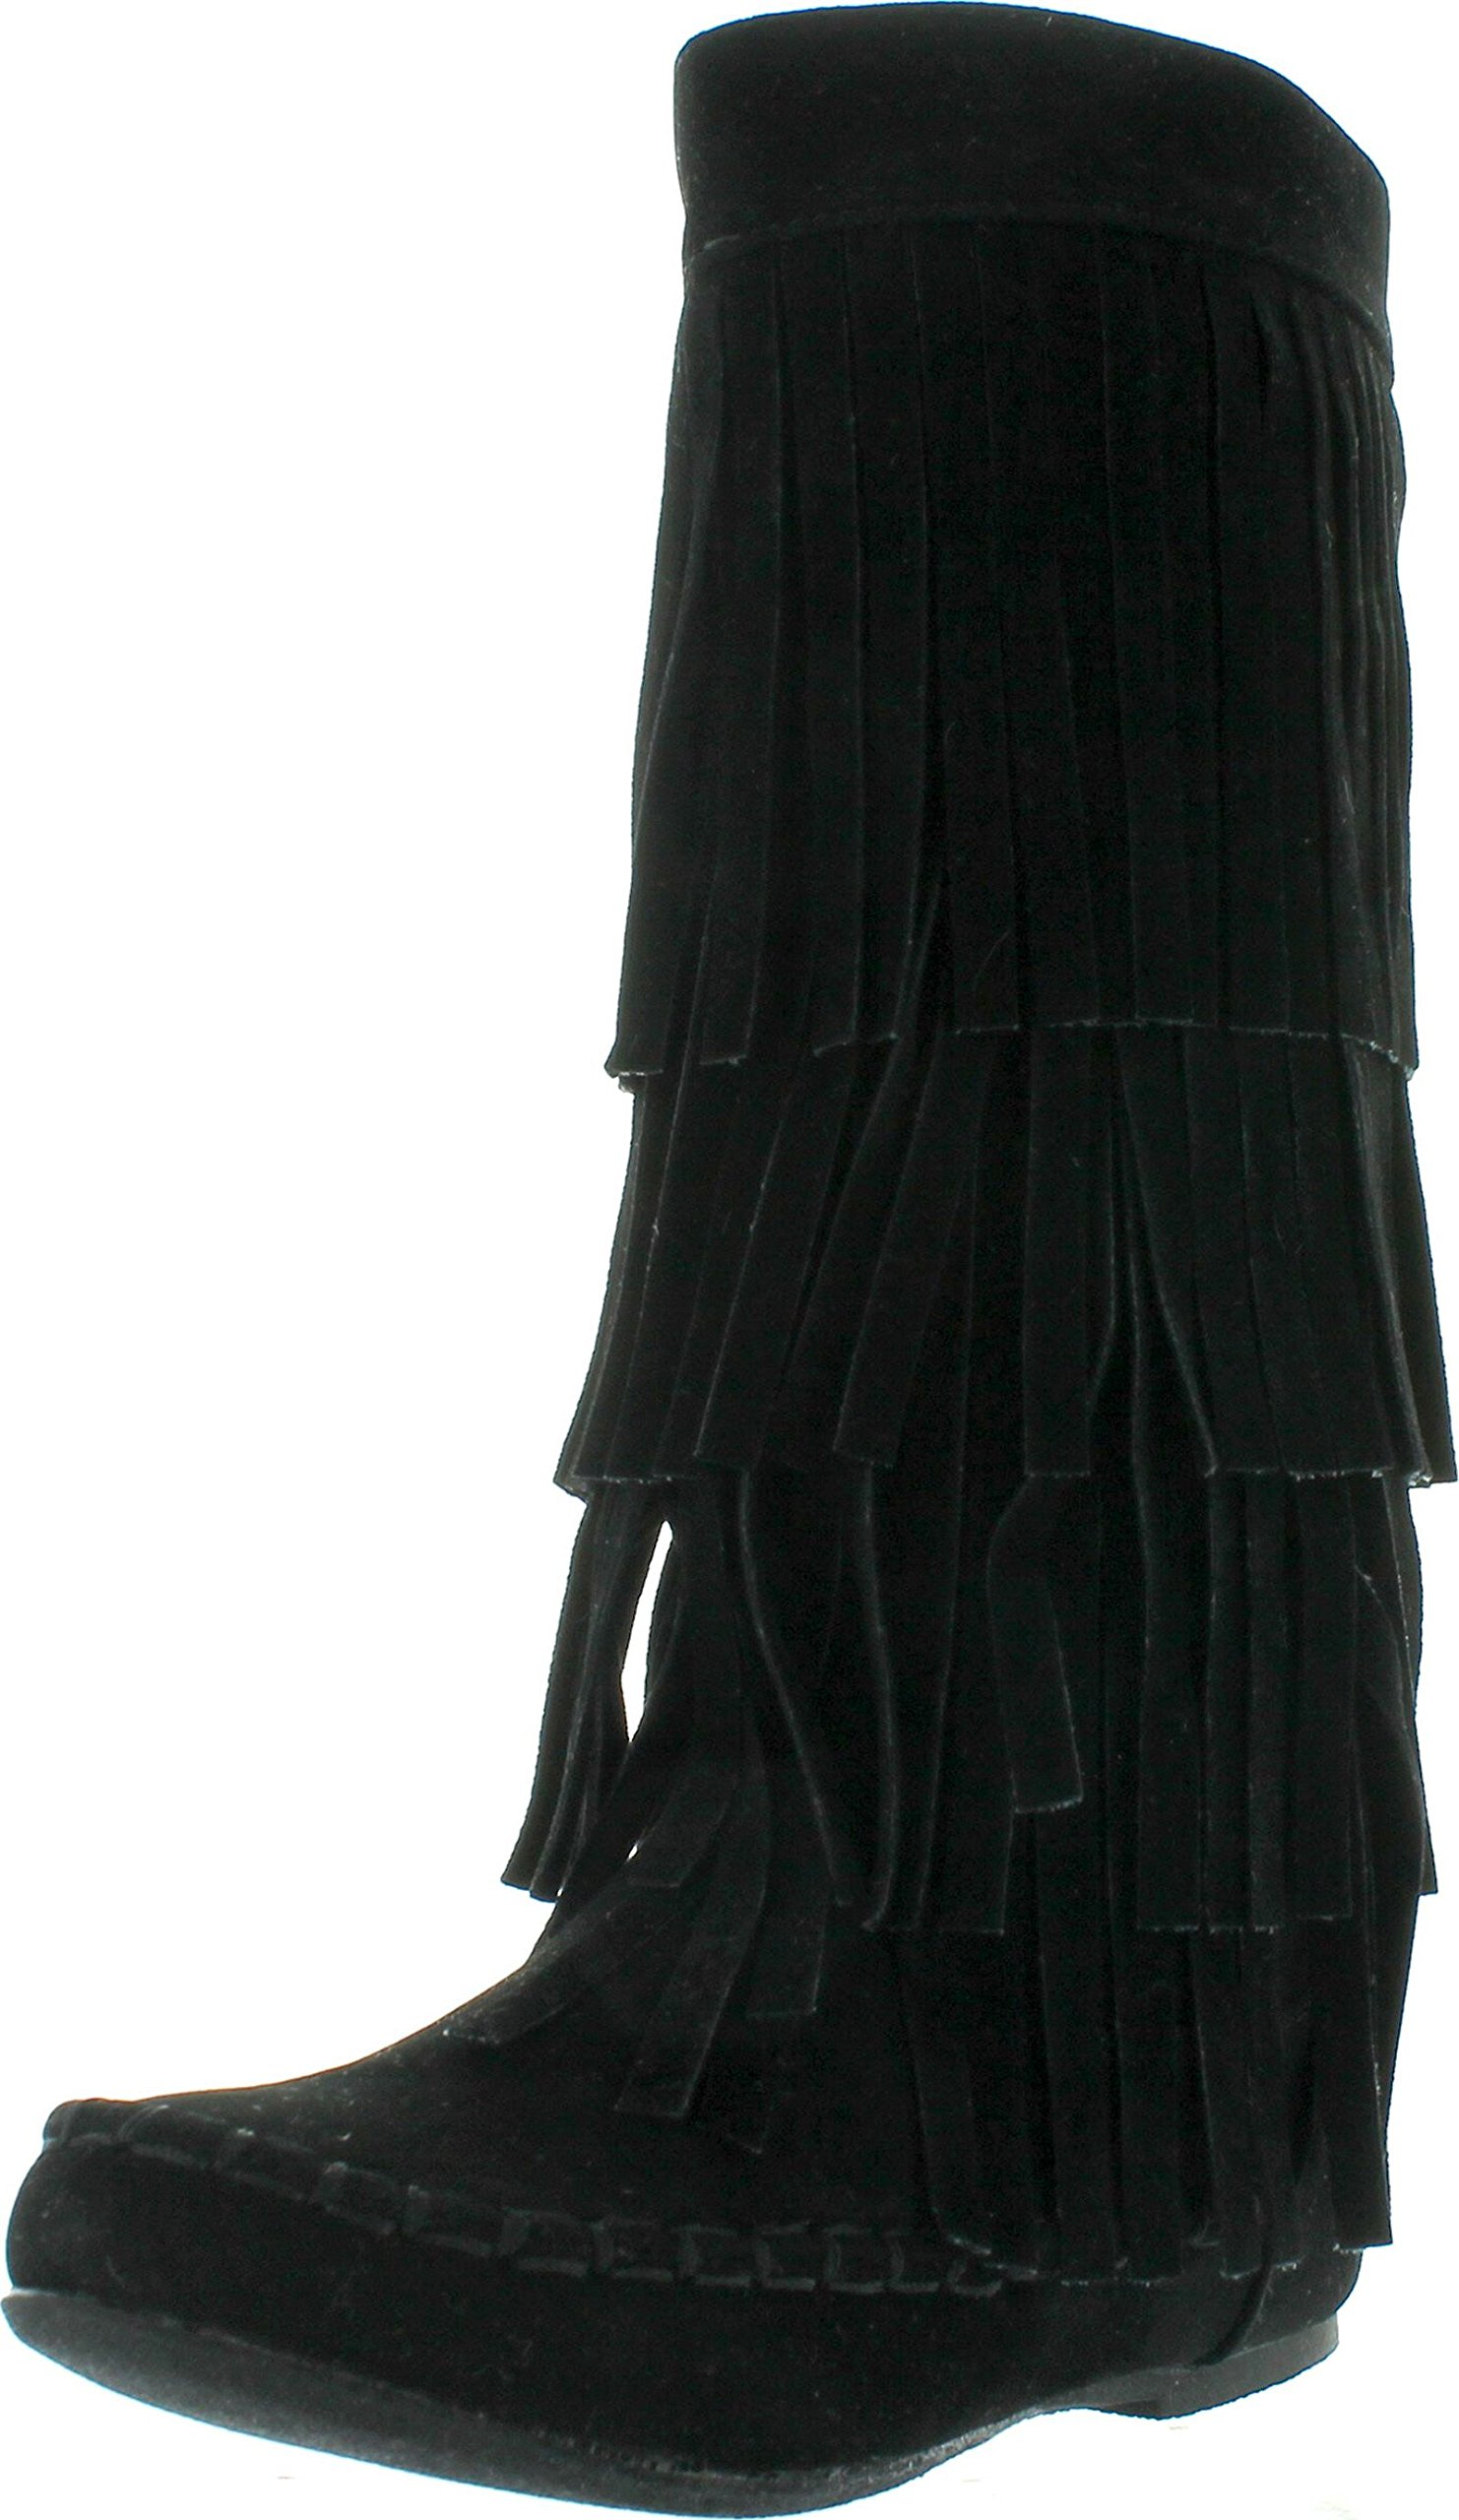 I LOVE KIDS Ava-18K Children's 3-Layers Fringe Moccasin Style Mid-Calf Boots,Black,13 by I LOVE KIDS (Image #1)